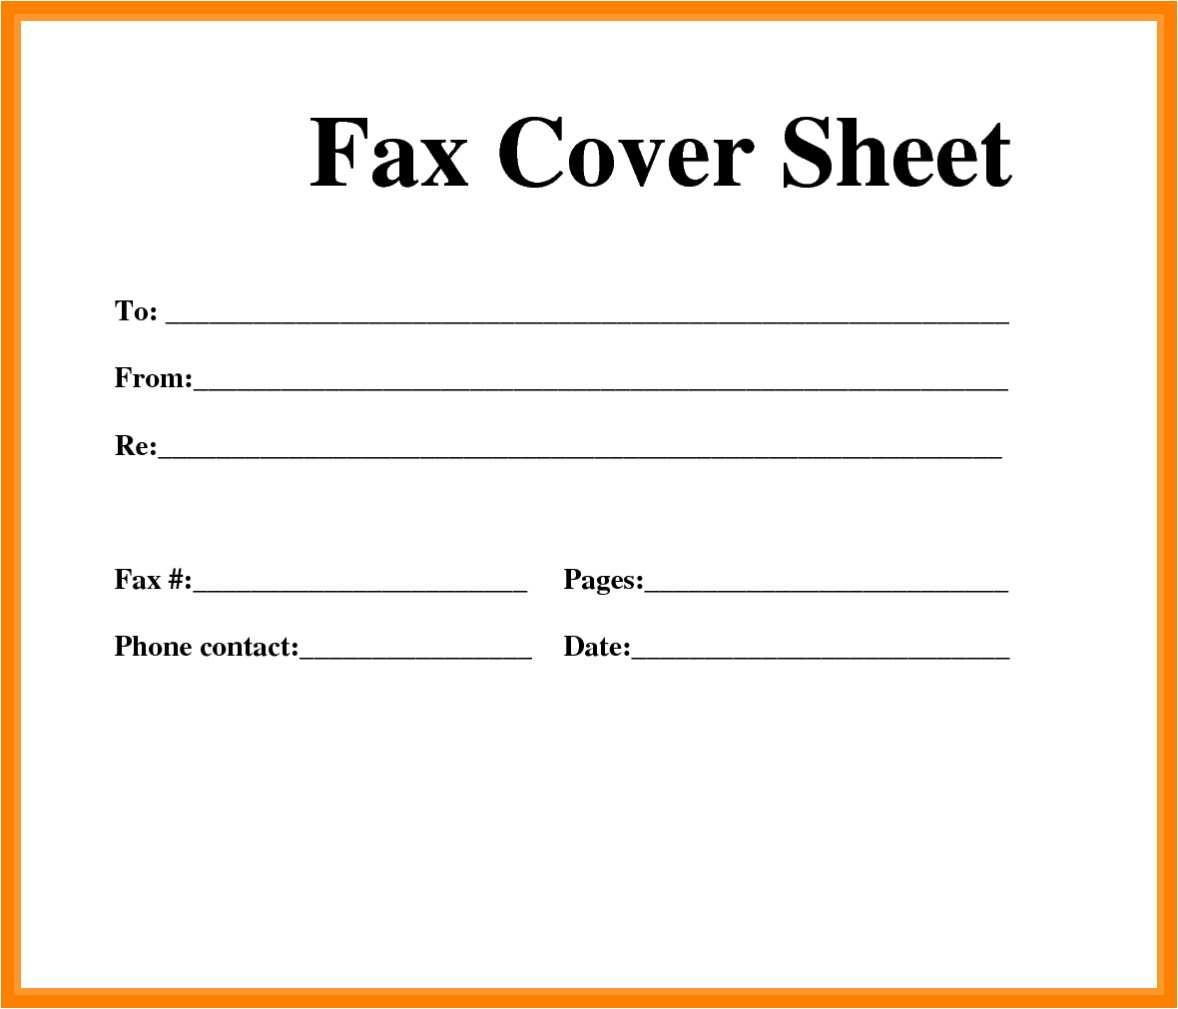 53 Fresh Fax Cover Sheet Template Word 2013 - All About Resume - Free Printable Fax Cover Page